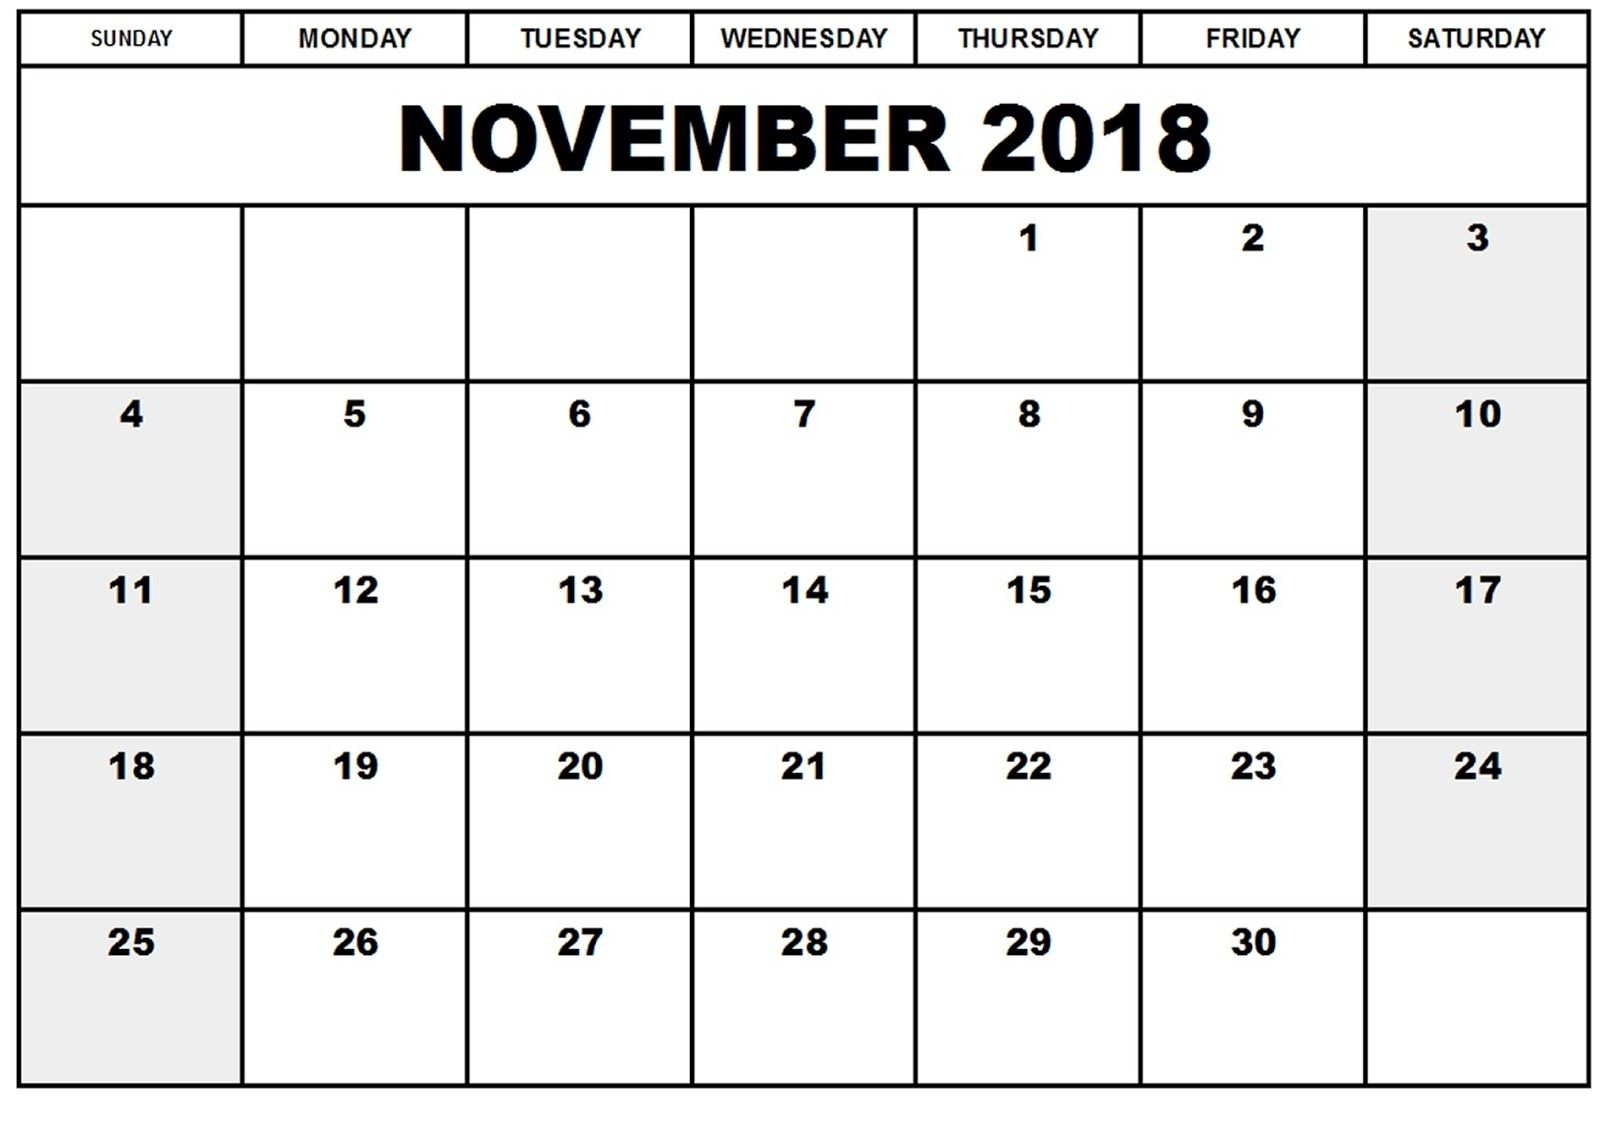 Full Sheet November 2018 Calendar Template | Template Calendar Printable with regard to Full Sheet November Calendar Template